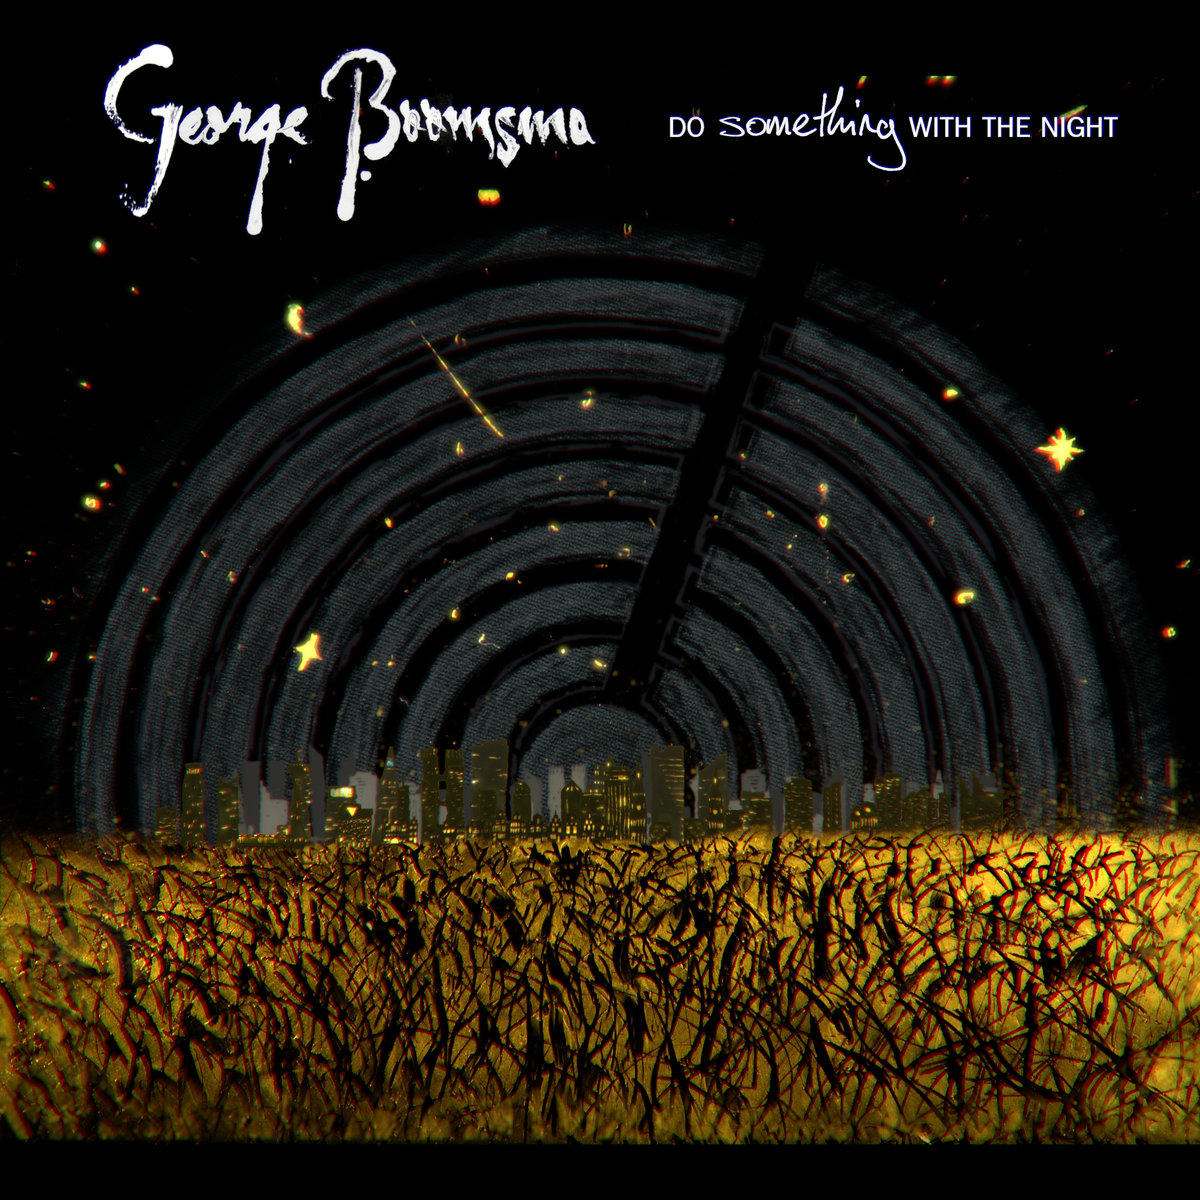 Artist:   George Boomsma    Title:  Do Something with the Night   Credit : Mastering   Year:  2018